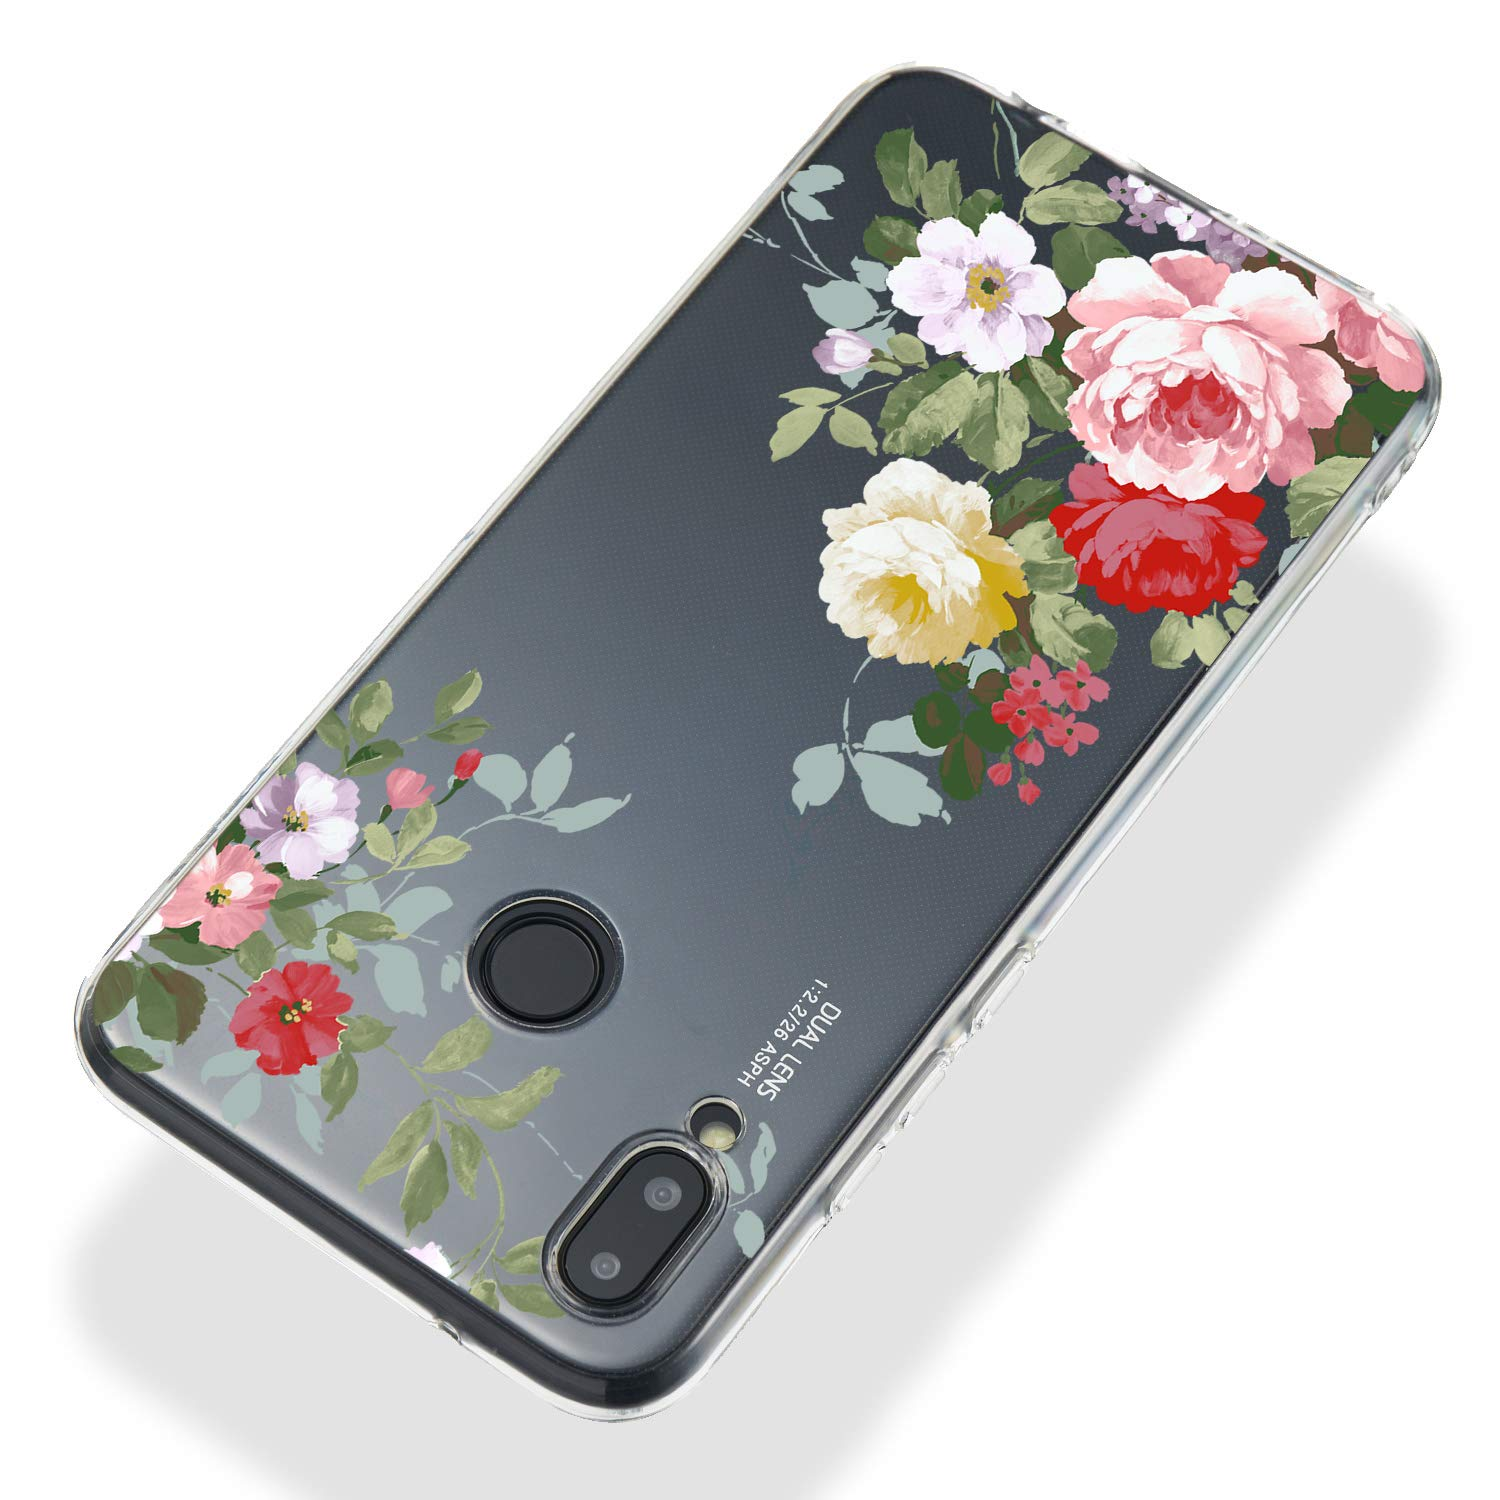 Soft Clear Case for Huawei P20 Lite,Flexible Plastic Case for Huawei P20 Lite,Moiky Creative Diagonal Green Branch Peony Printed Ultra Thin TPU Silicone Transparent Crystal Slim Fit Back Cover Case by MOIKY (Image #3)